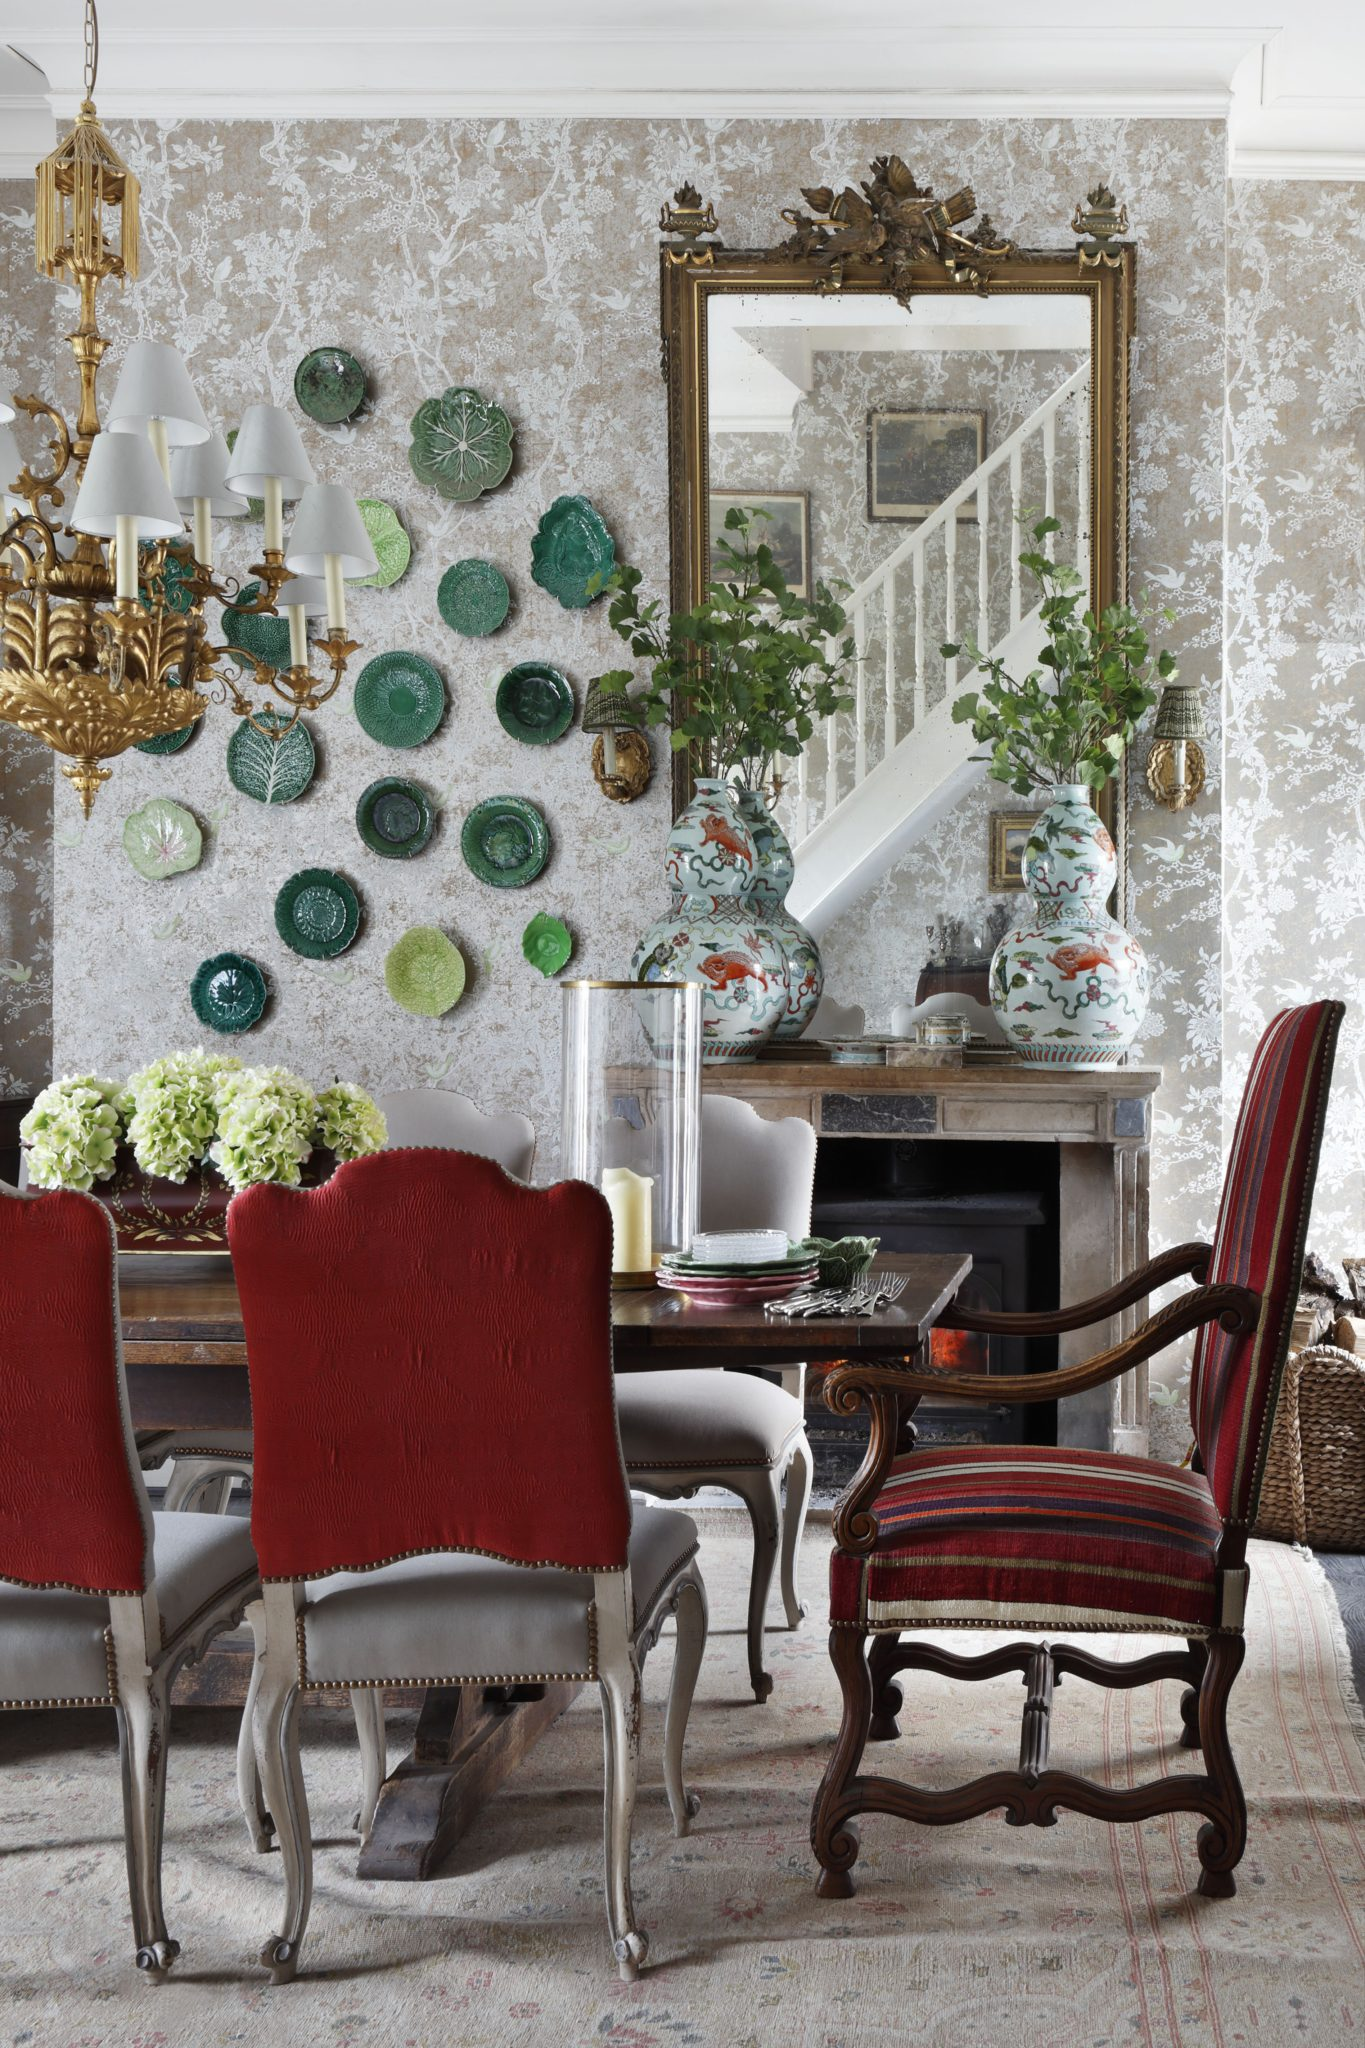 "VSP Interiors  Henriette von Stockhausen of VSP Interiors is not a fan of trends. Instead, she prefers to choose the style and furnishings based on what's right for the client's space. Trends often tend toward excess, as extremes stand out more on social media, and von Stockhausen particularly dislikes over-the-top ""pattern mixing for its own sake."" When she looks at an overly maximalist room, she sometimes thinks, ""that would drive me so mad that I couldn't live there."" She adds, ""The eye needs to find a place to rest in an interior rather than endlessly wander, in my opinion.""  That said, von Stockhausen isn't shy about splicing together styles with restraint. And often, a designer's style may align with trends; as the designer notes, the wall-hanging green plates in the above room seem trendy, but ""this was a collection of plates that we hung together for some fun,"" not to follow a trend."